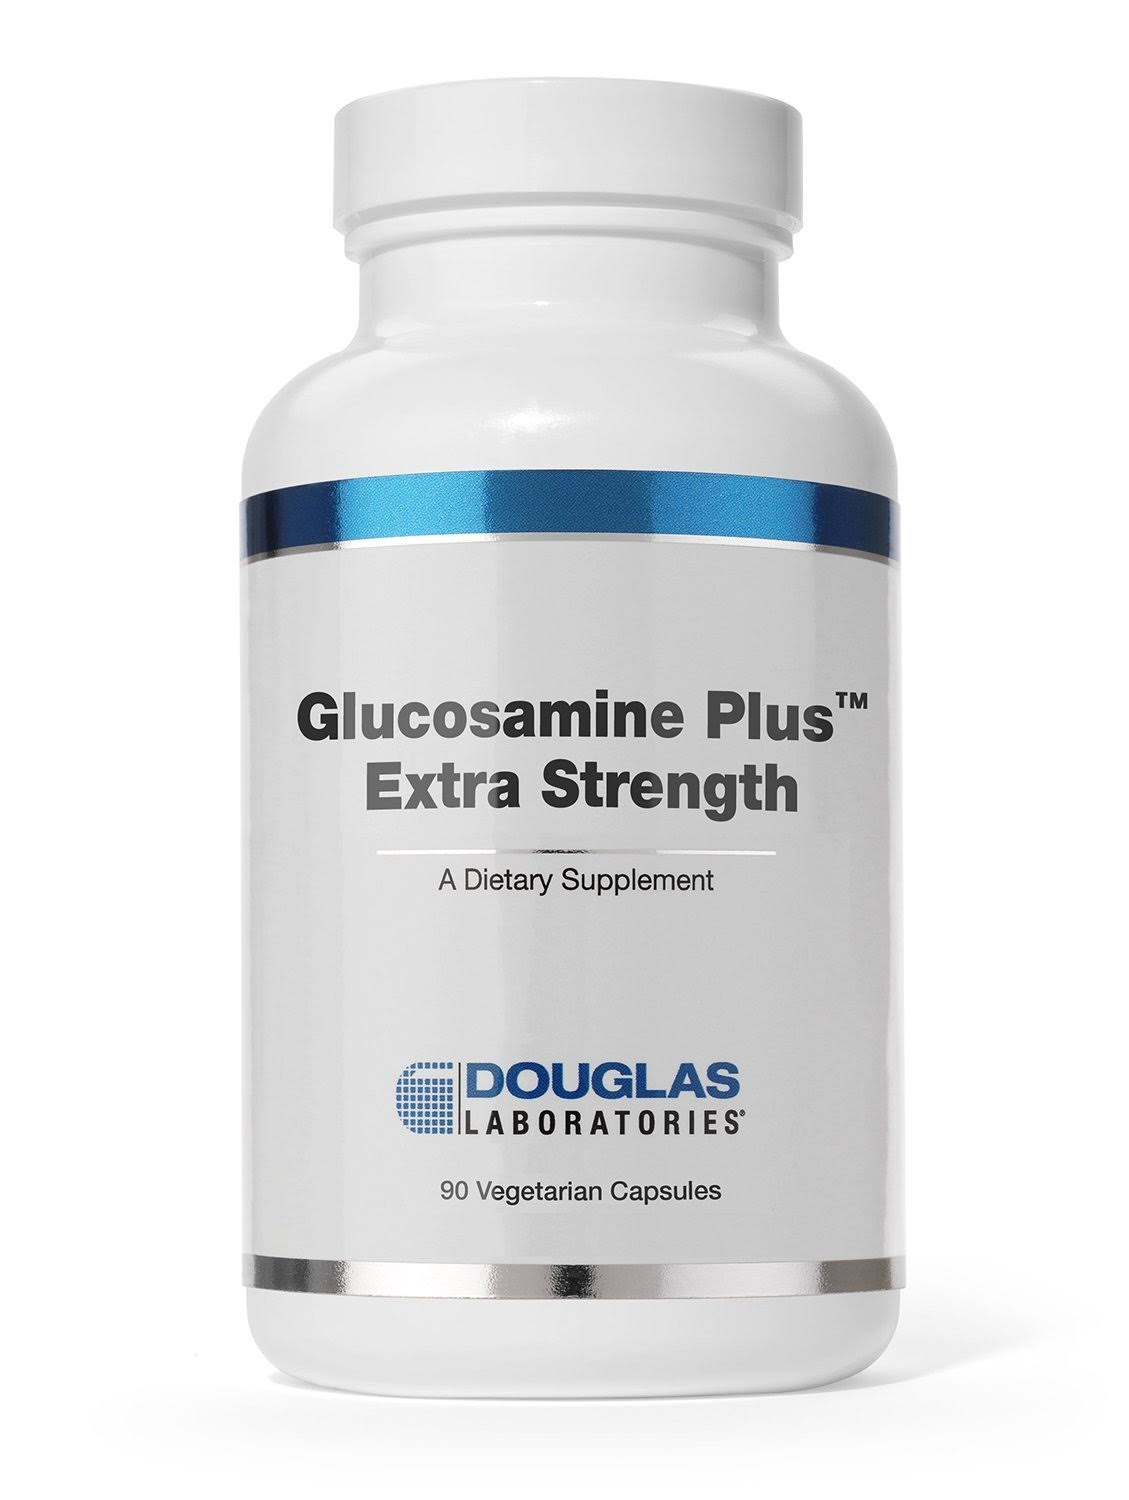 Douglas Laboratories Glucosamine Plus Extra Strength 90 Capsules